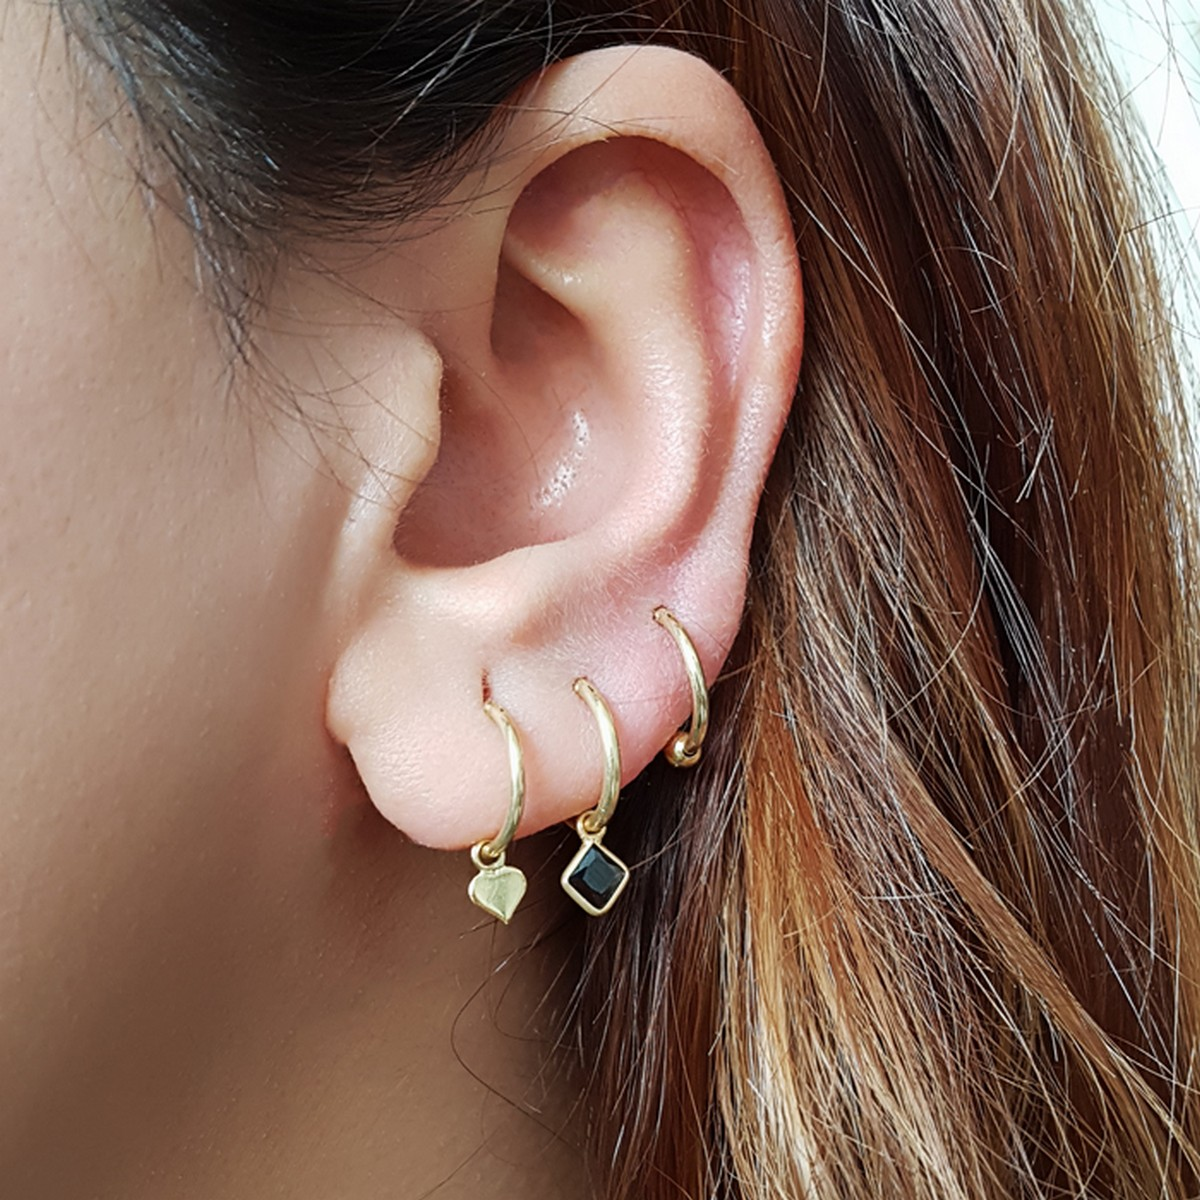 Heart Hoops | Oorbellen goldplated 925 zilver